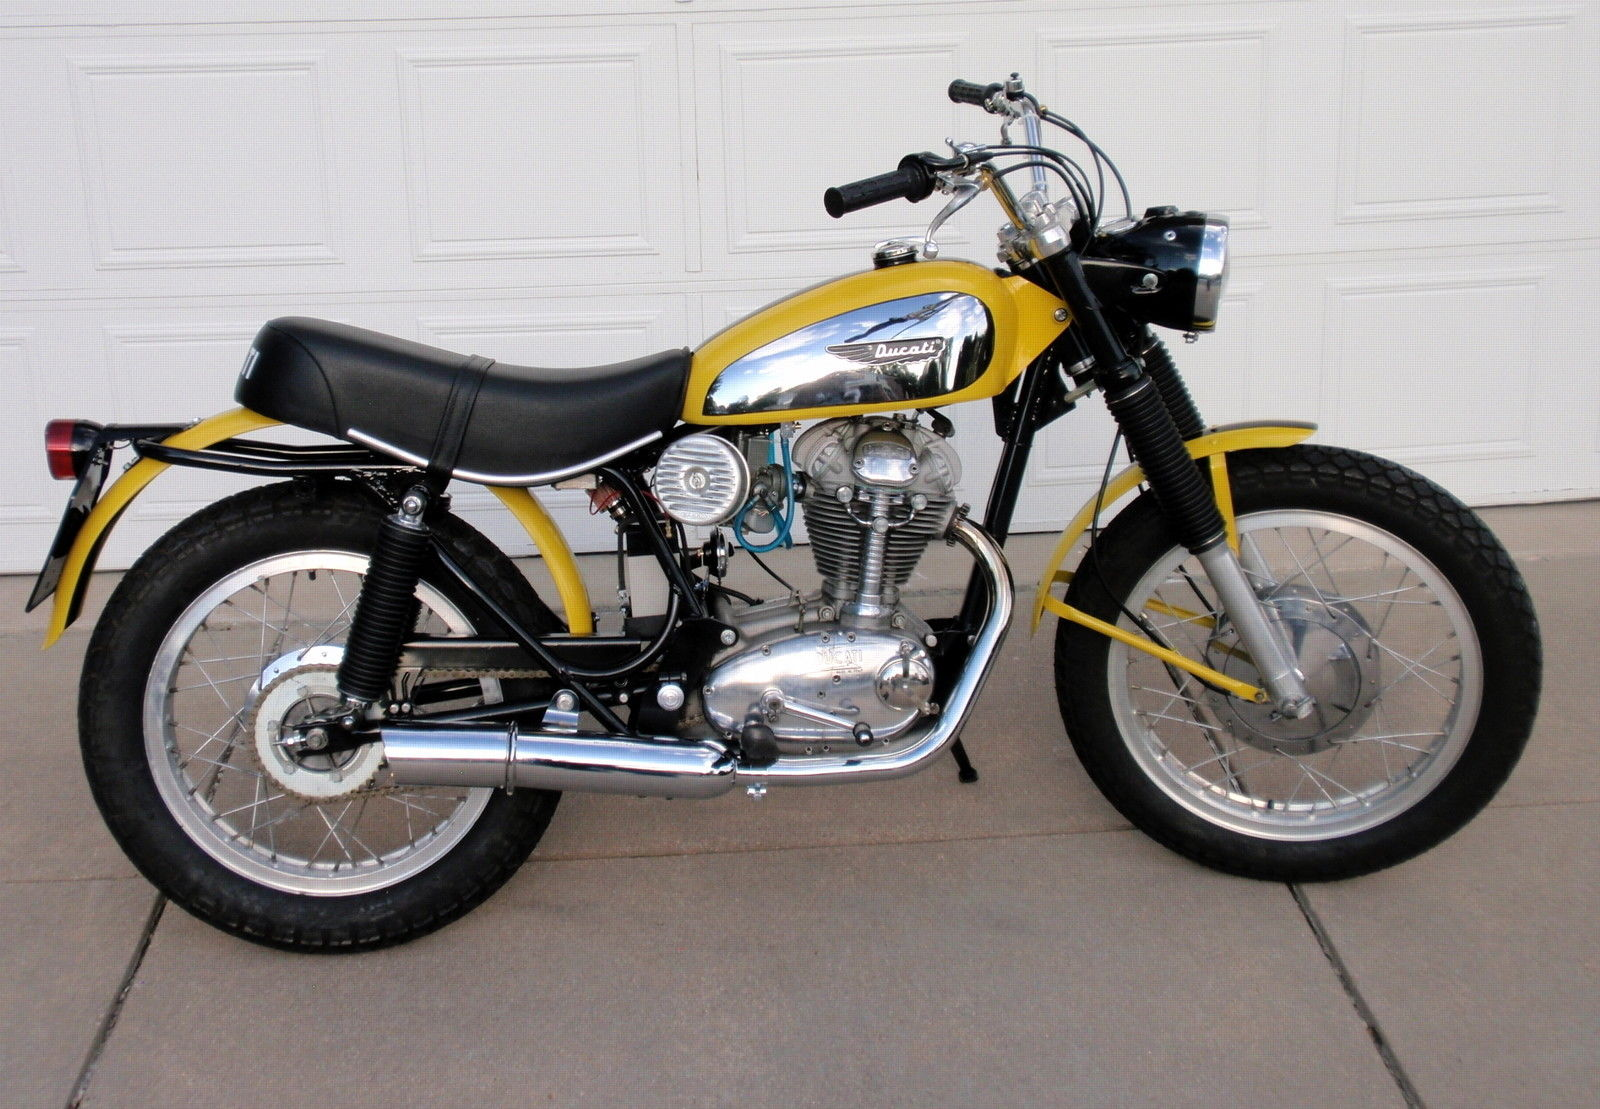 ducati 1968 1 ducati scrambler 1968 restored classic motorcycles at bikes  at panicattacktreatment.co